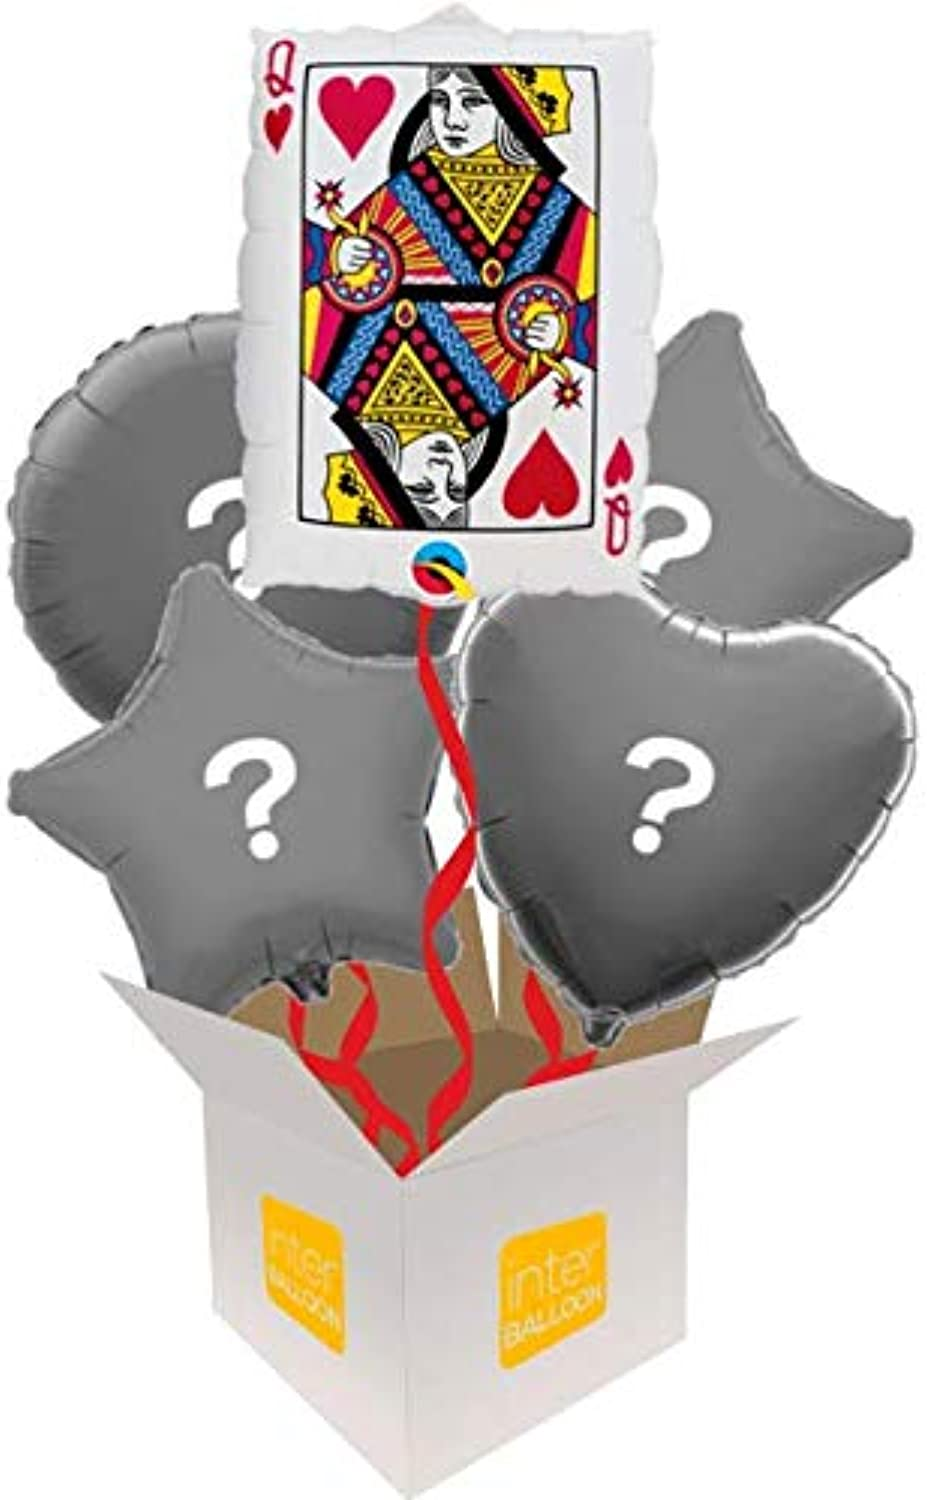 InterBalloon Helium Inflated 30  Queen of Hearts Balloon Delivered in a Box with 4 Extra Balloons of your choice